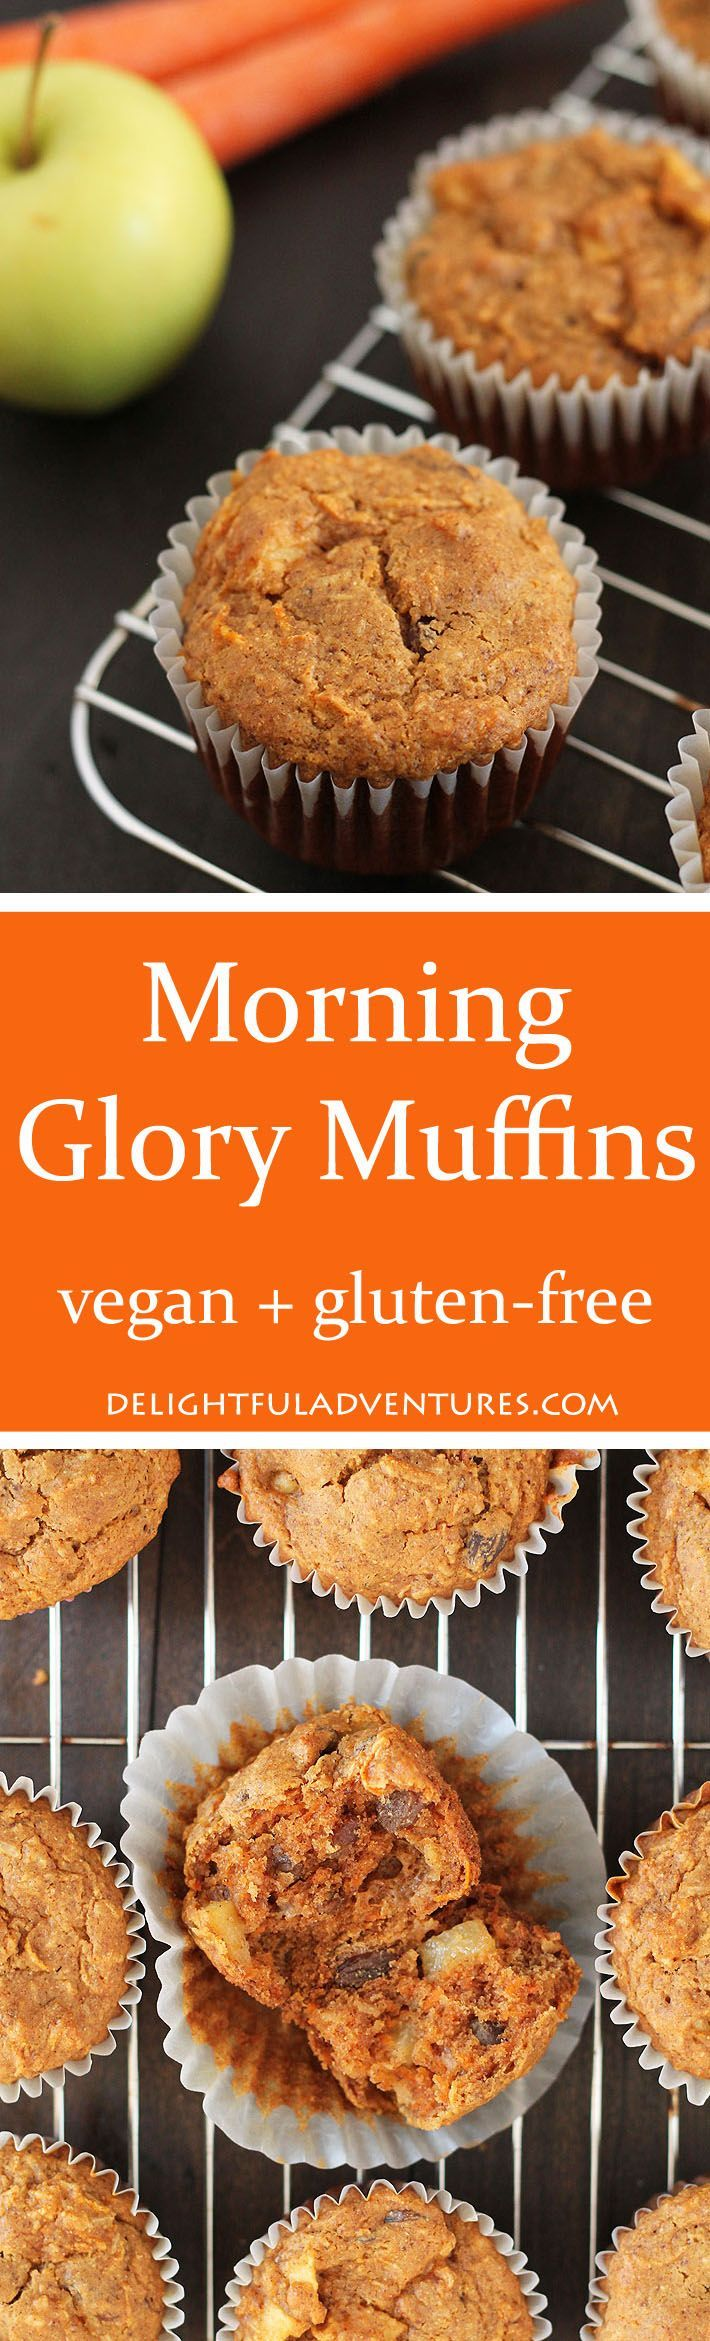 Healthy Vegan Gluten Free Morning Glory Muffins loaded with carrots, coconut, raisins, and apples. Perfect to have for breakfast or a snack. via @delighfuladv